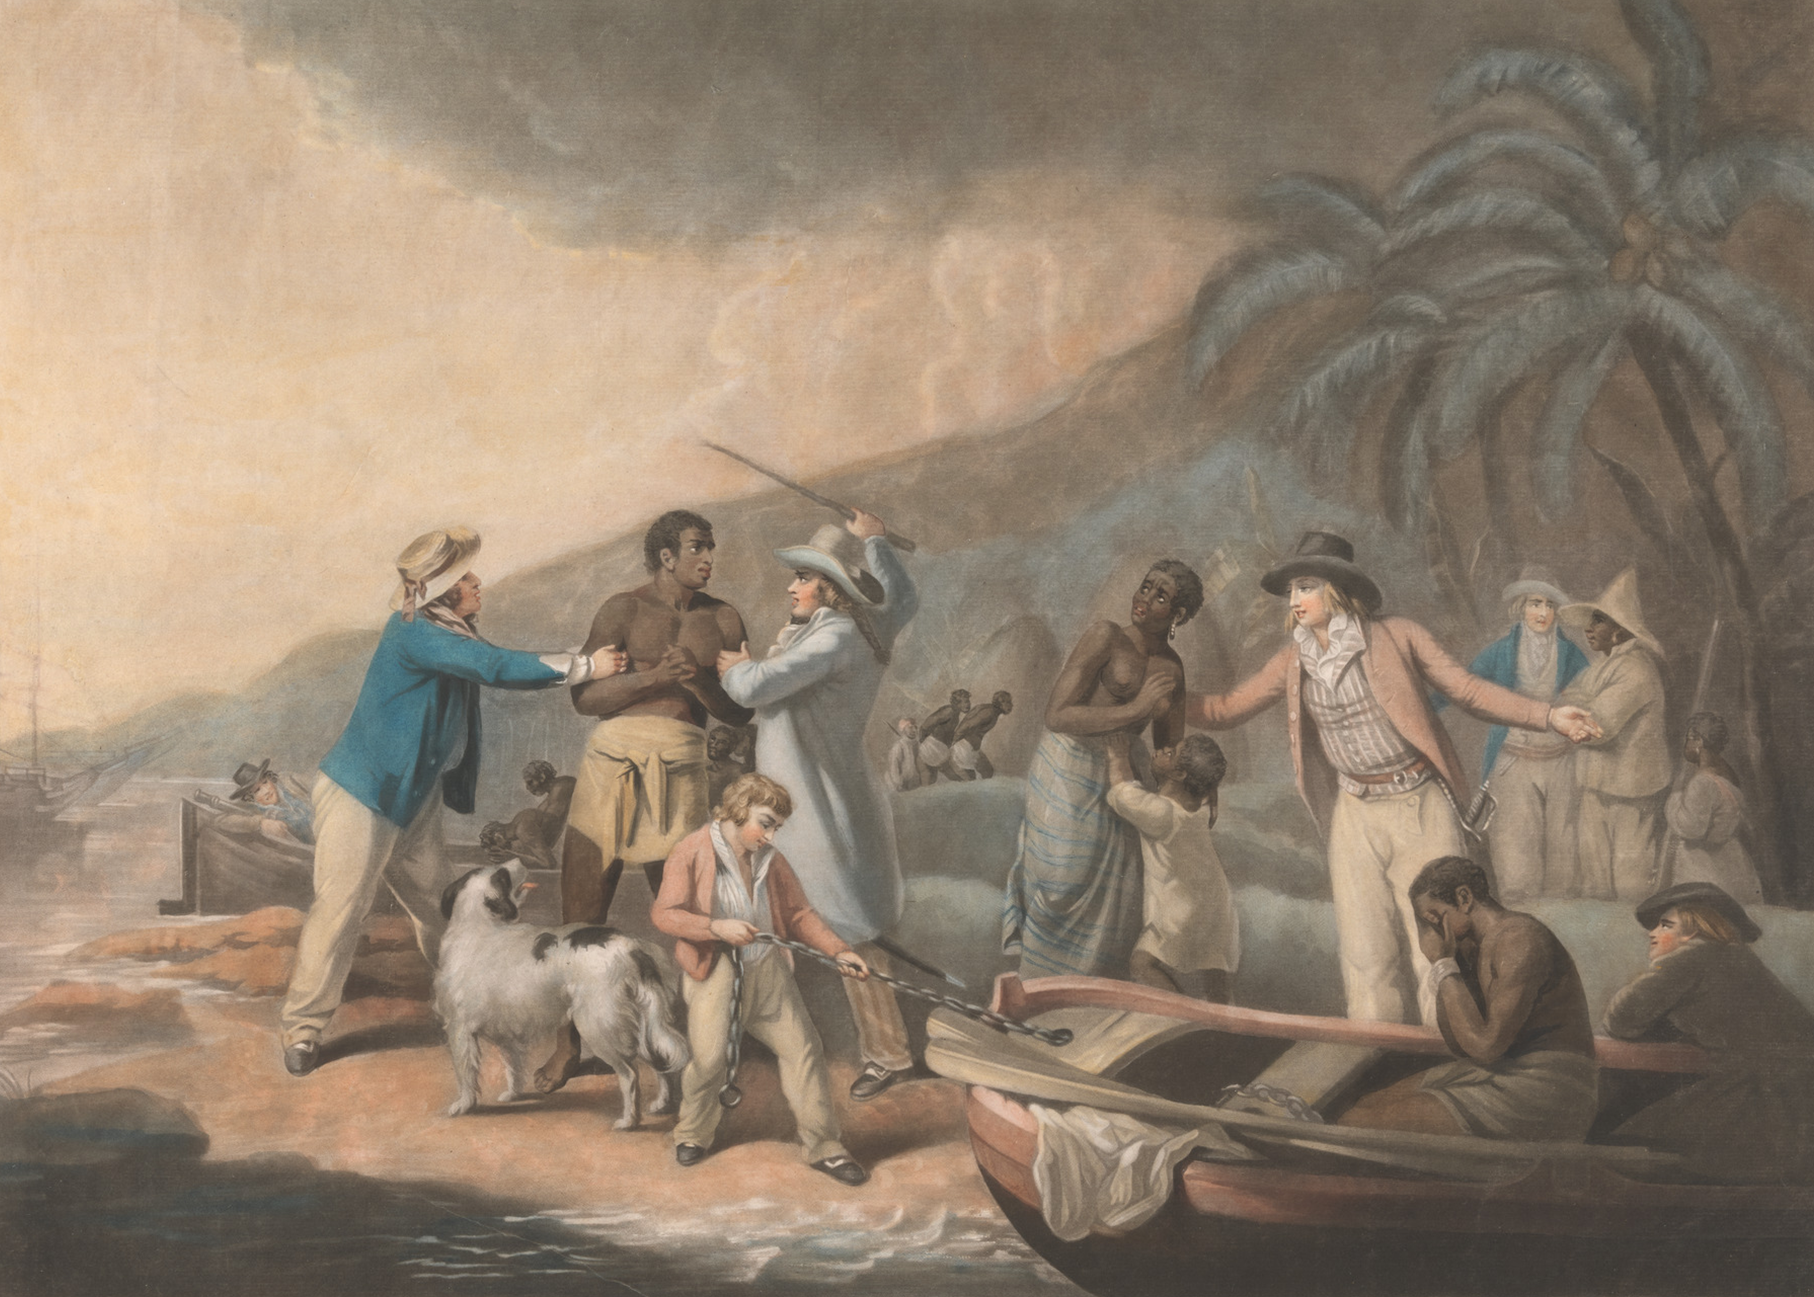 12. FoE_Morland_The Slave Trade.png